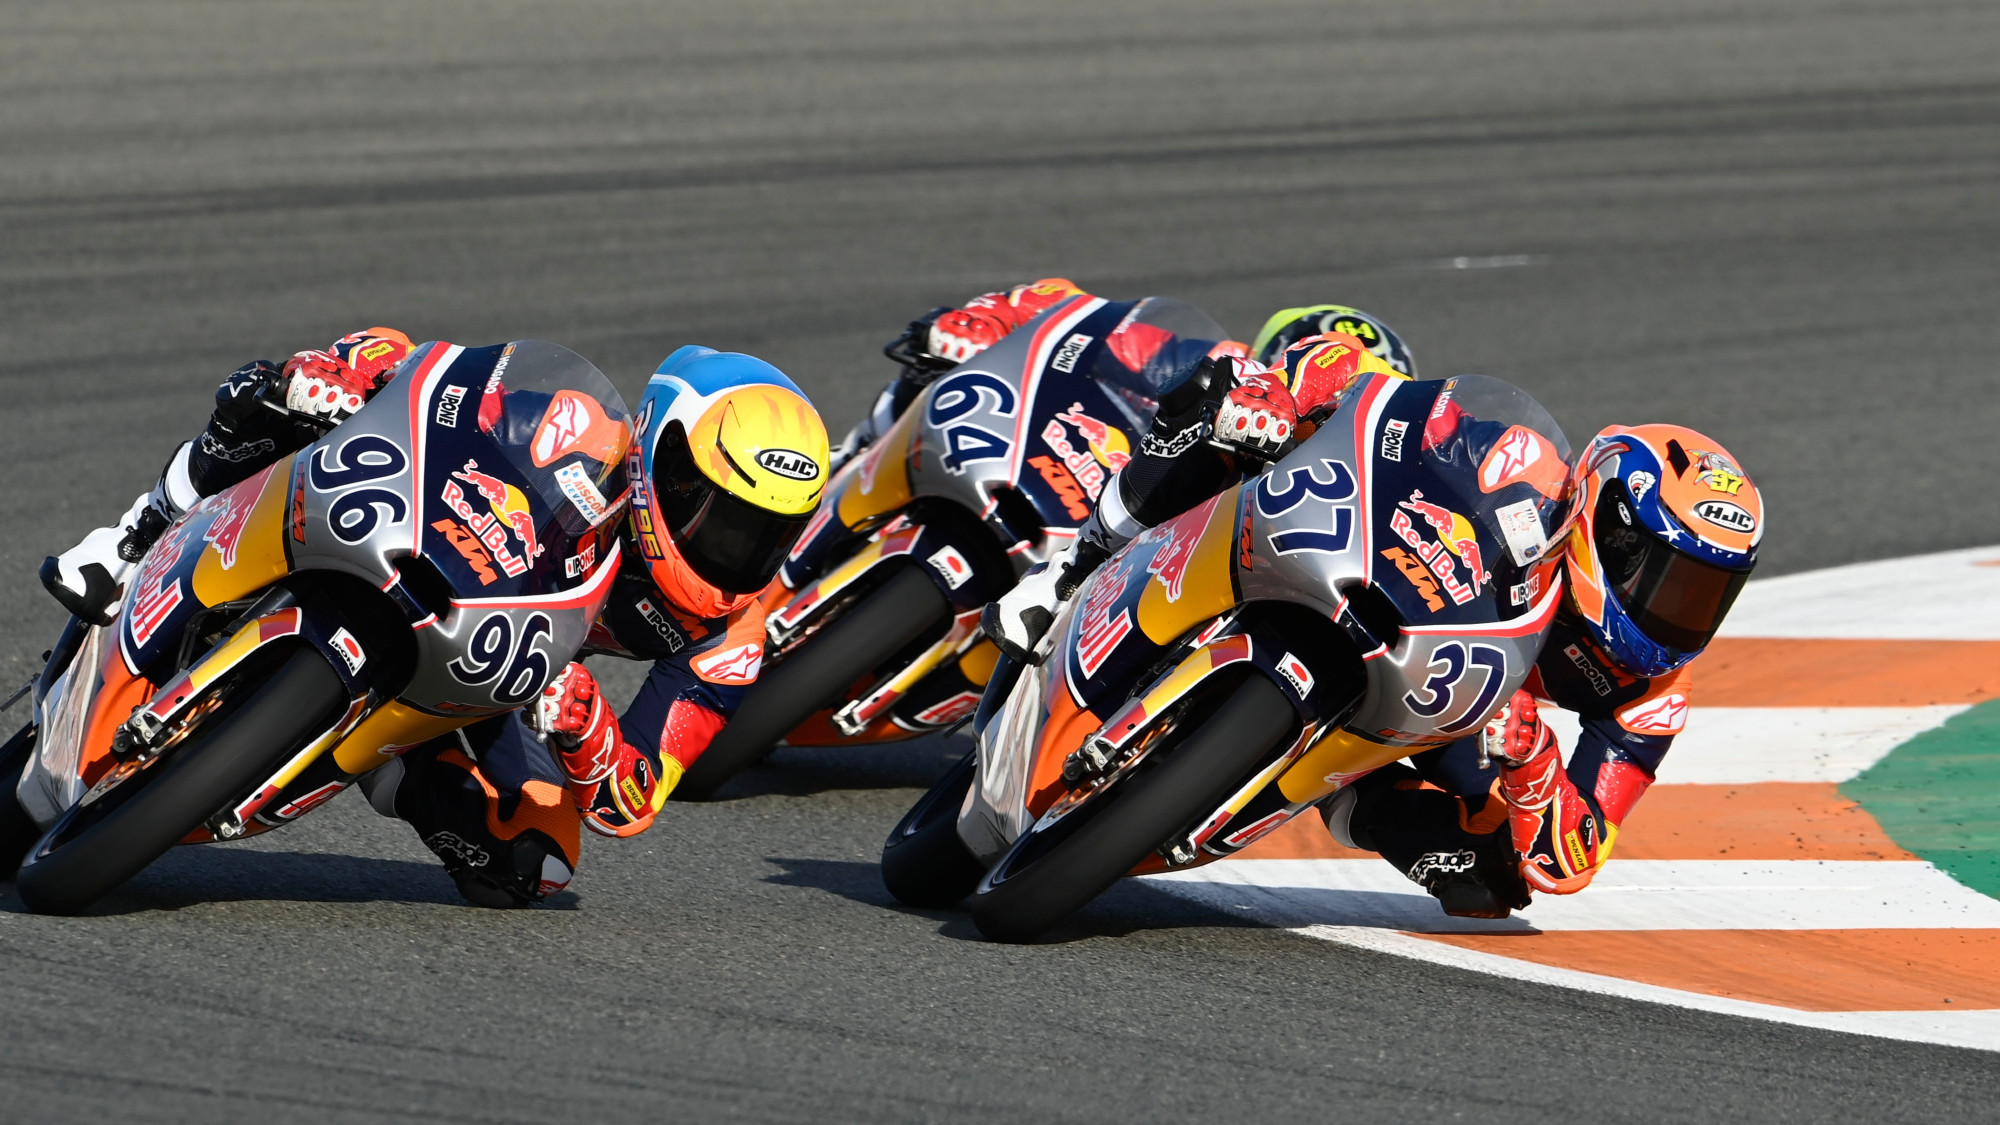 Pedro Acosta, Red Bull Rookies Cup